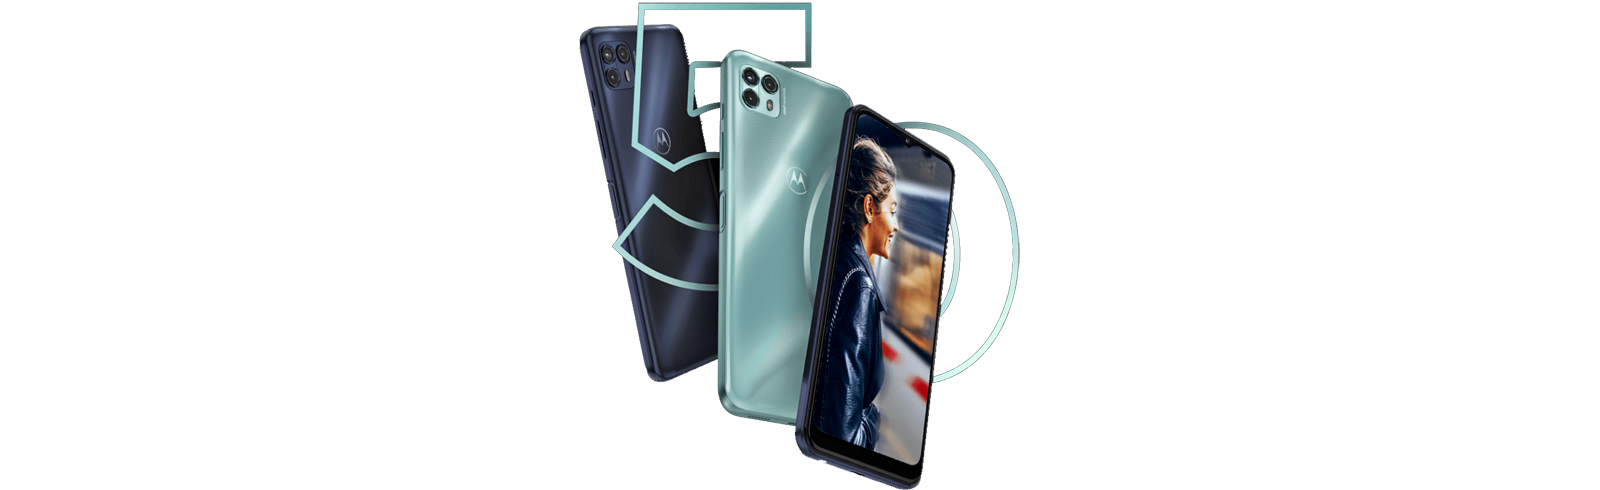 Motorola Moto G50 5G with Dimensity 700 is unveiled in Australia and New Zealand